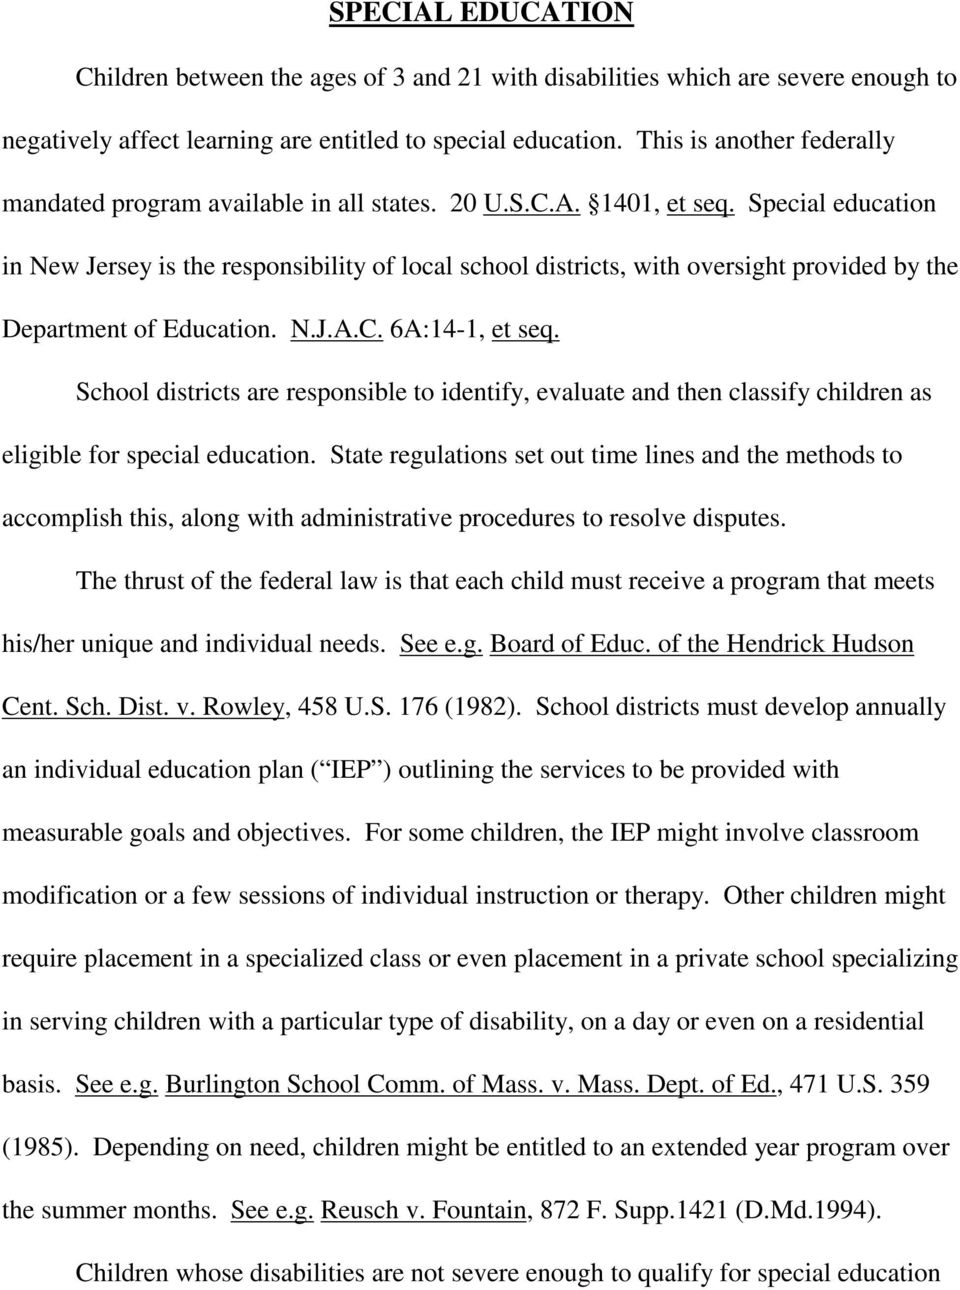 Special education in New Jersey is the responsibility of local school districts, with oversight provided by the Department of Education. N.J.A.C. 6A:14-1, et seq.